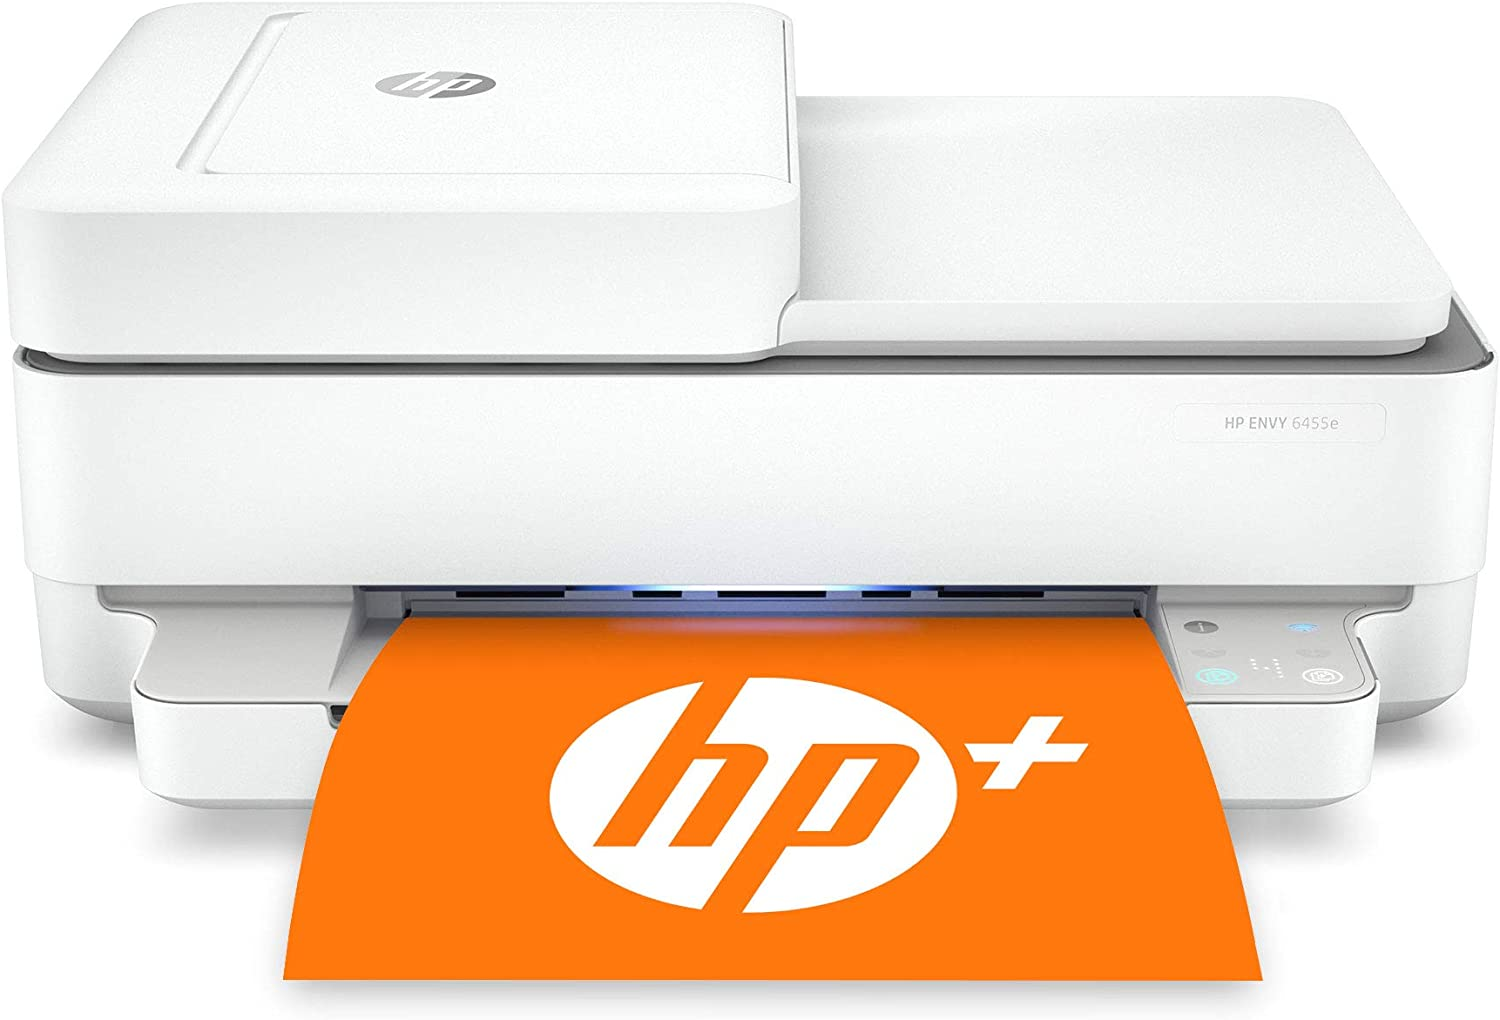 HP ENVY 6455e All-in-One Wireless Color Printer, with bonus 6 months free Instant Ink with HP+ (223R1A)